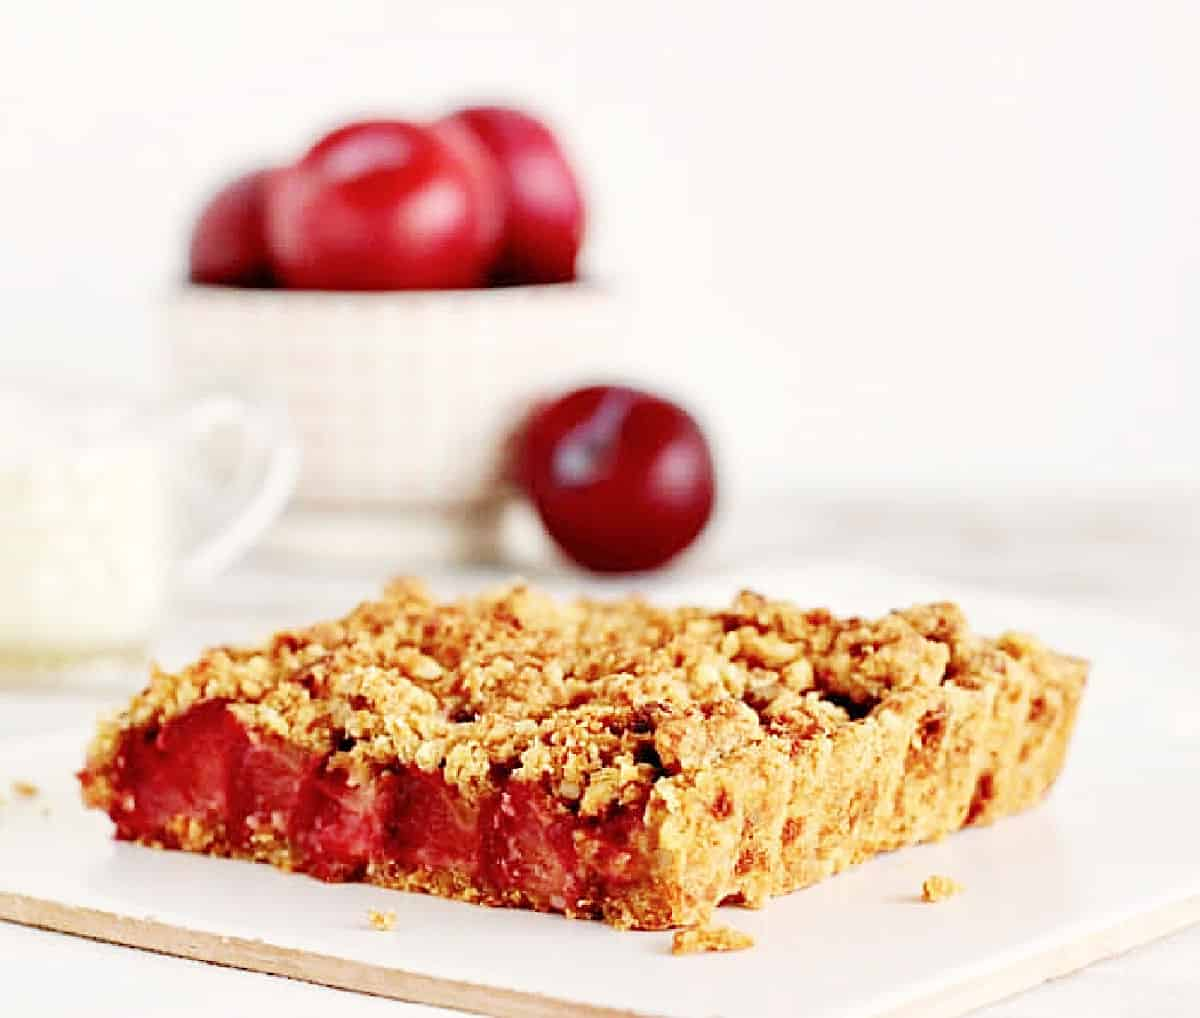 One square serving of plum crumble tart on white surface; whole plums in bowl in background